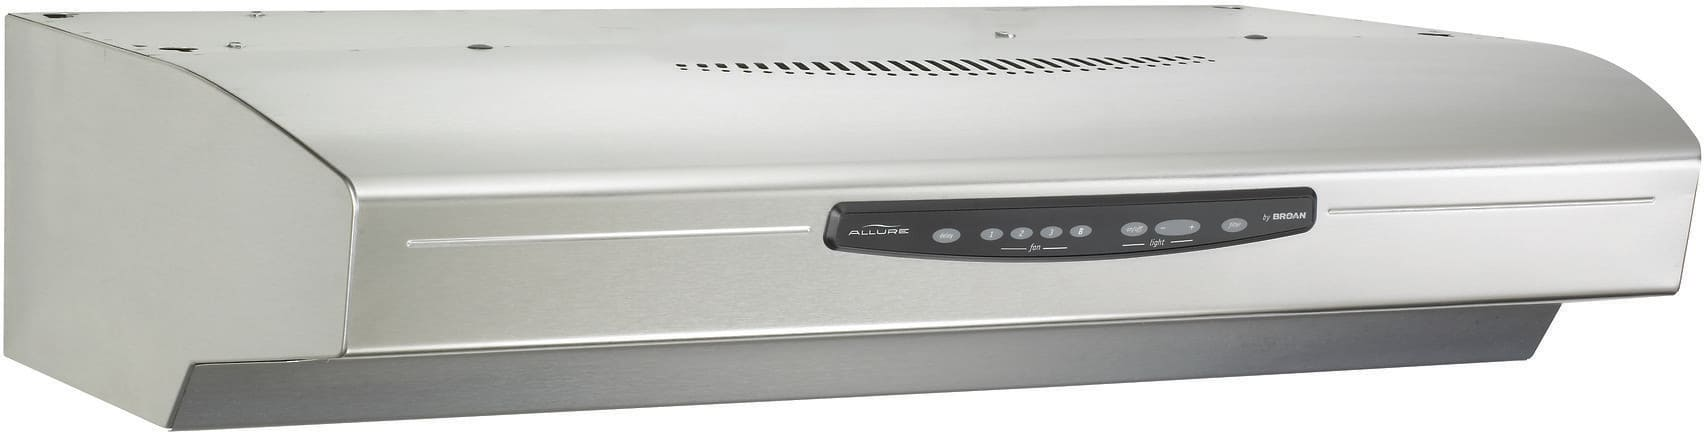 broan qs330ss 30 inch under cabinet range hood with 430 cfm internal blower 4speed electronic control and 3level light settings stainless steel